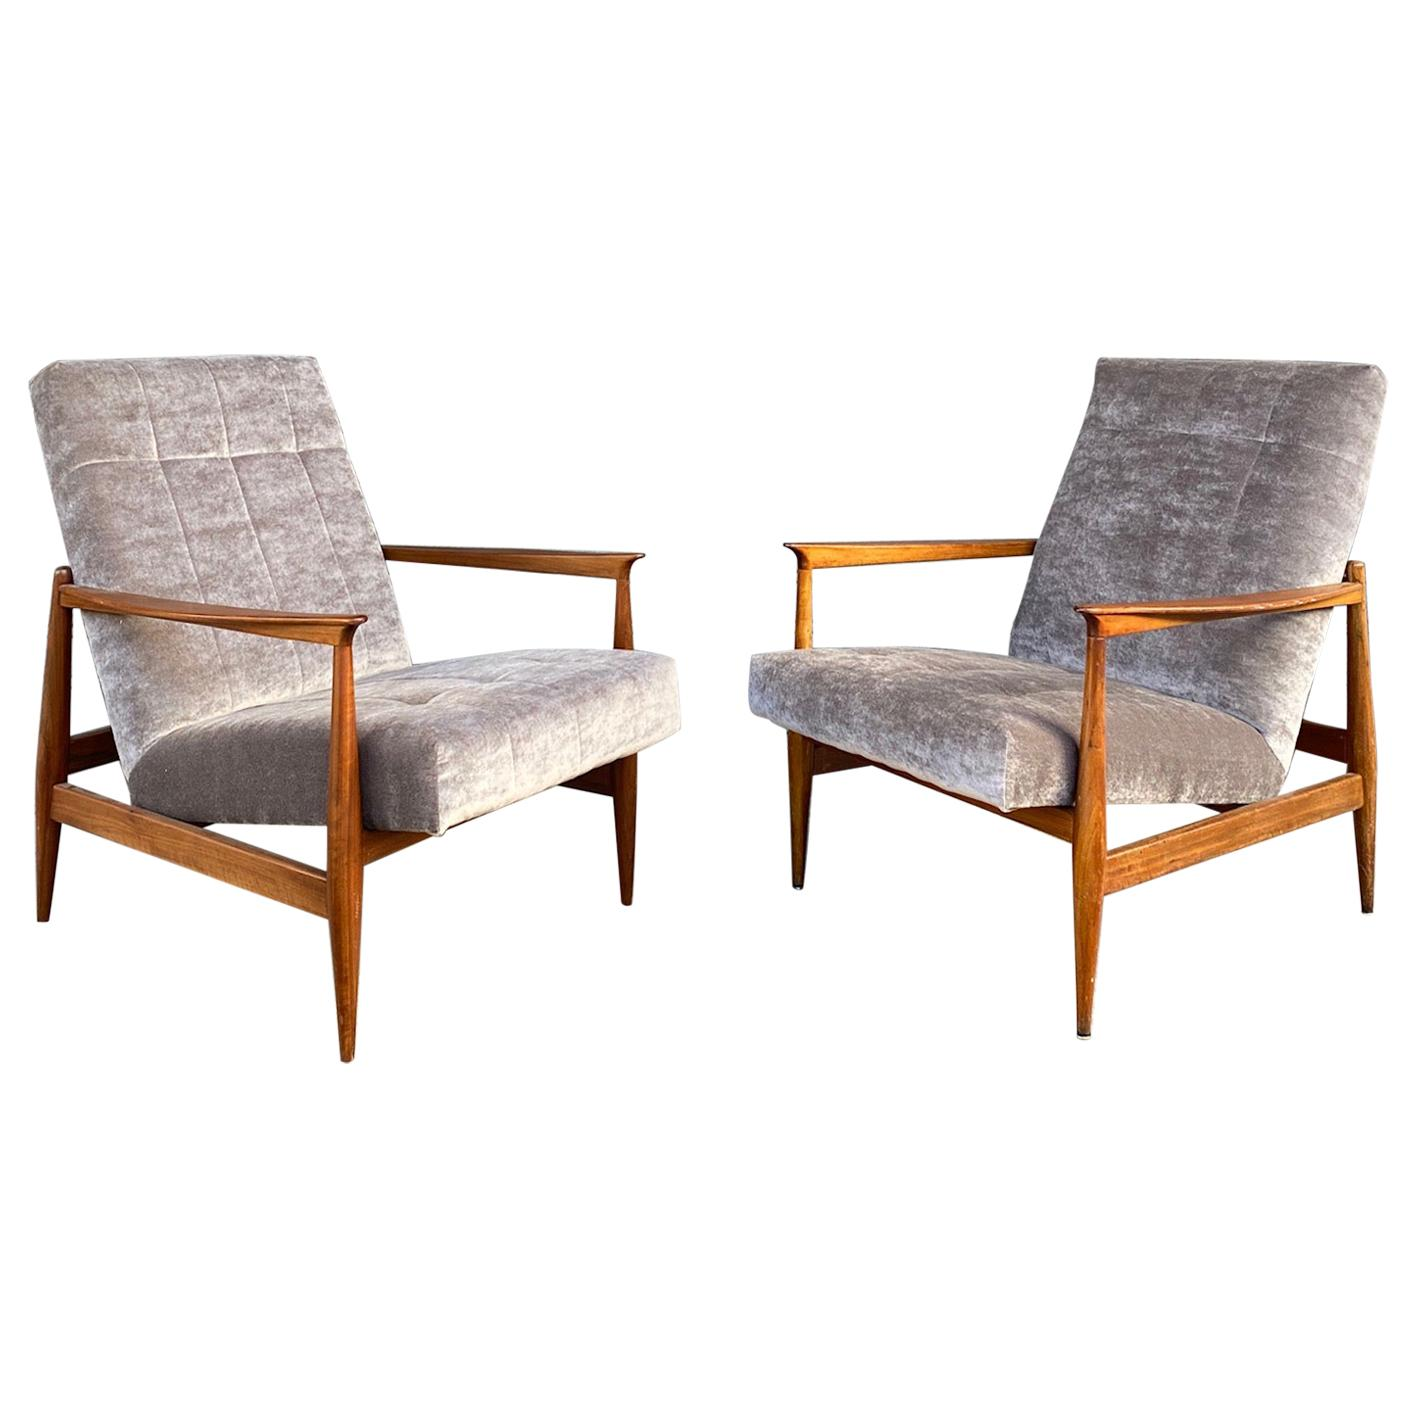 Pair of Armchairs, Altamira Editions, Portugal, 1960s